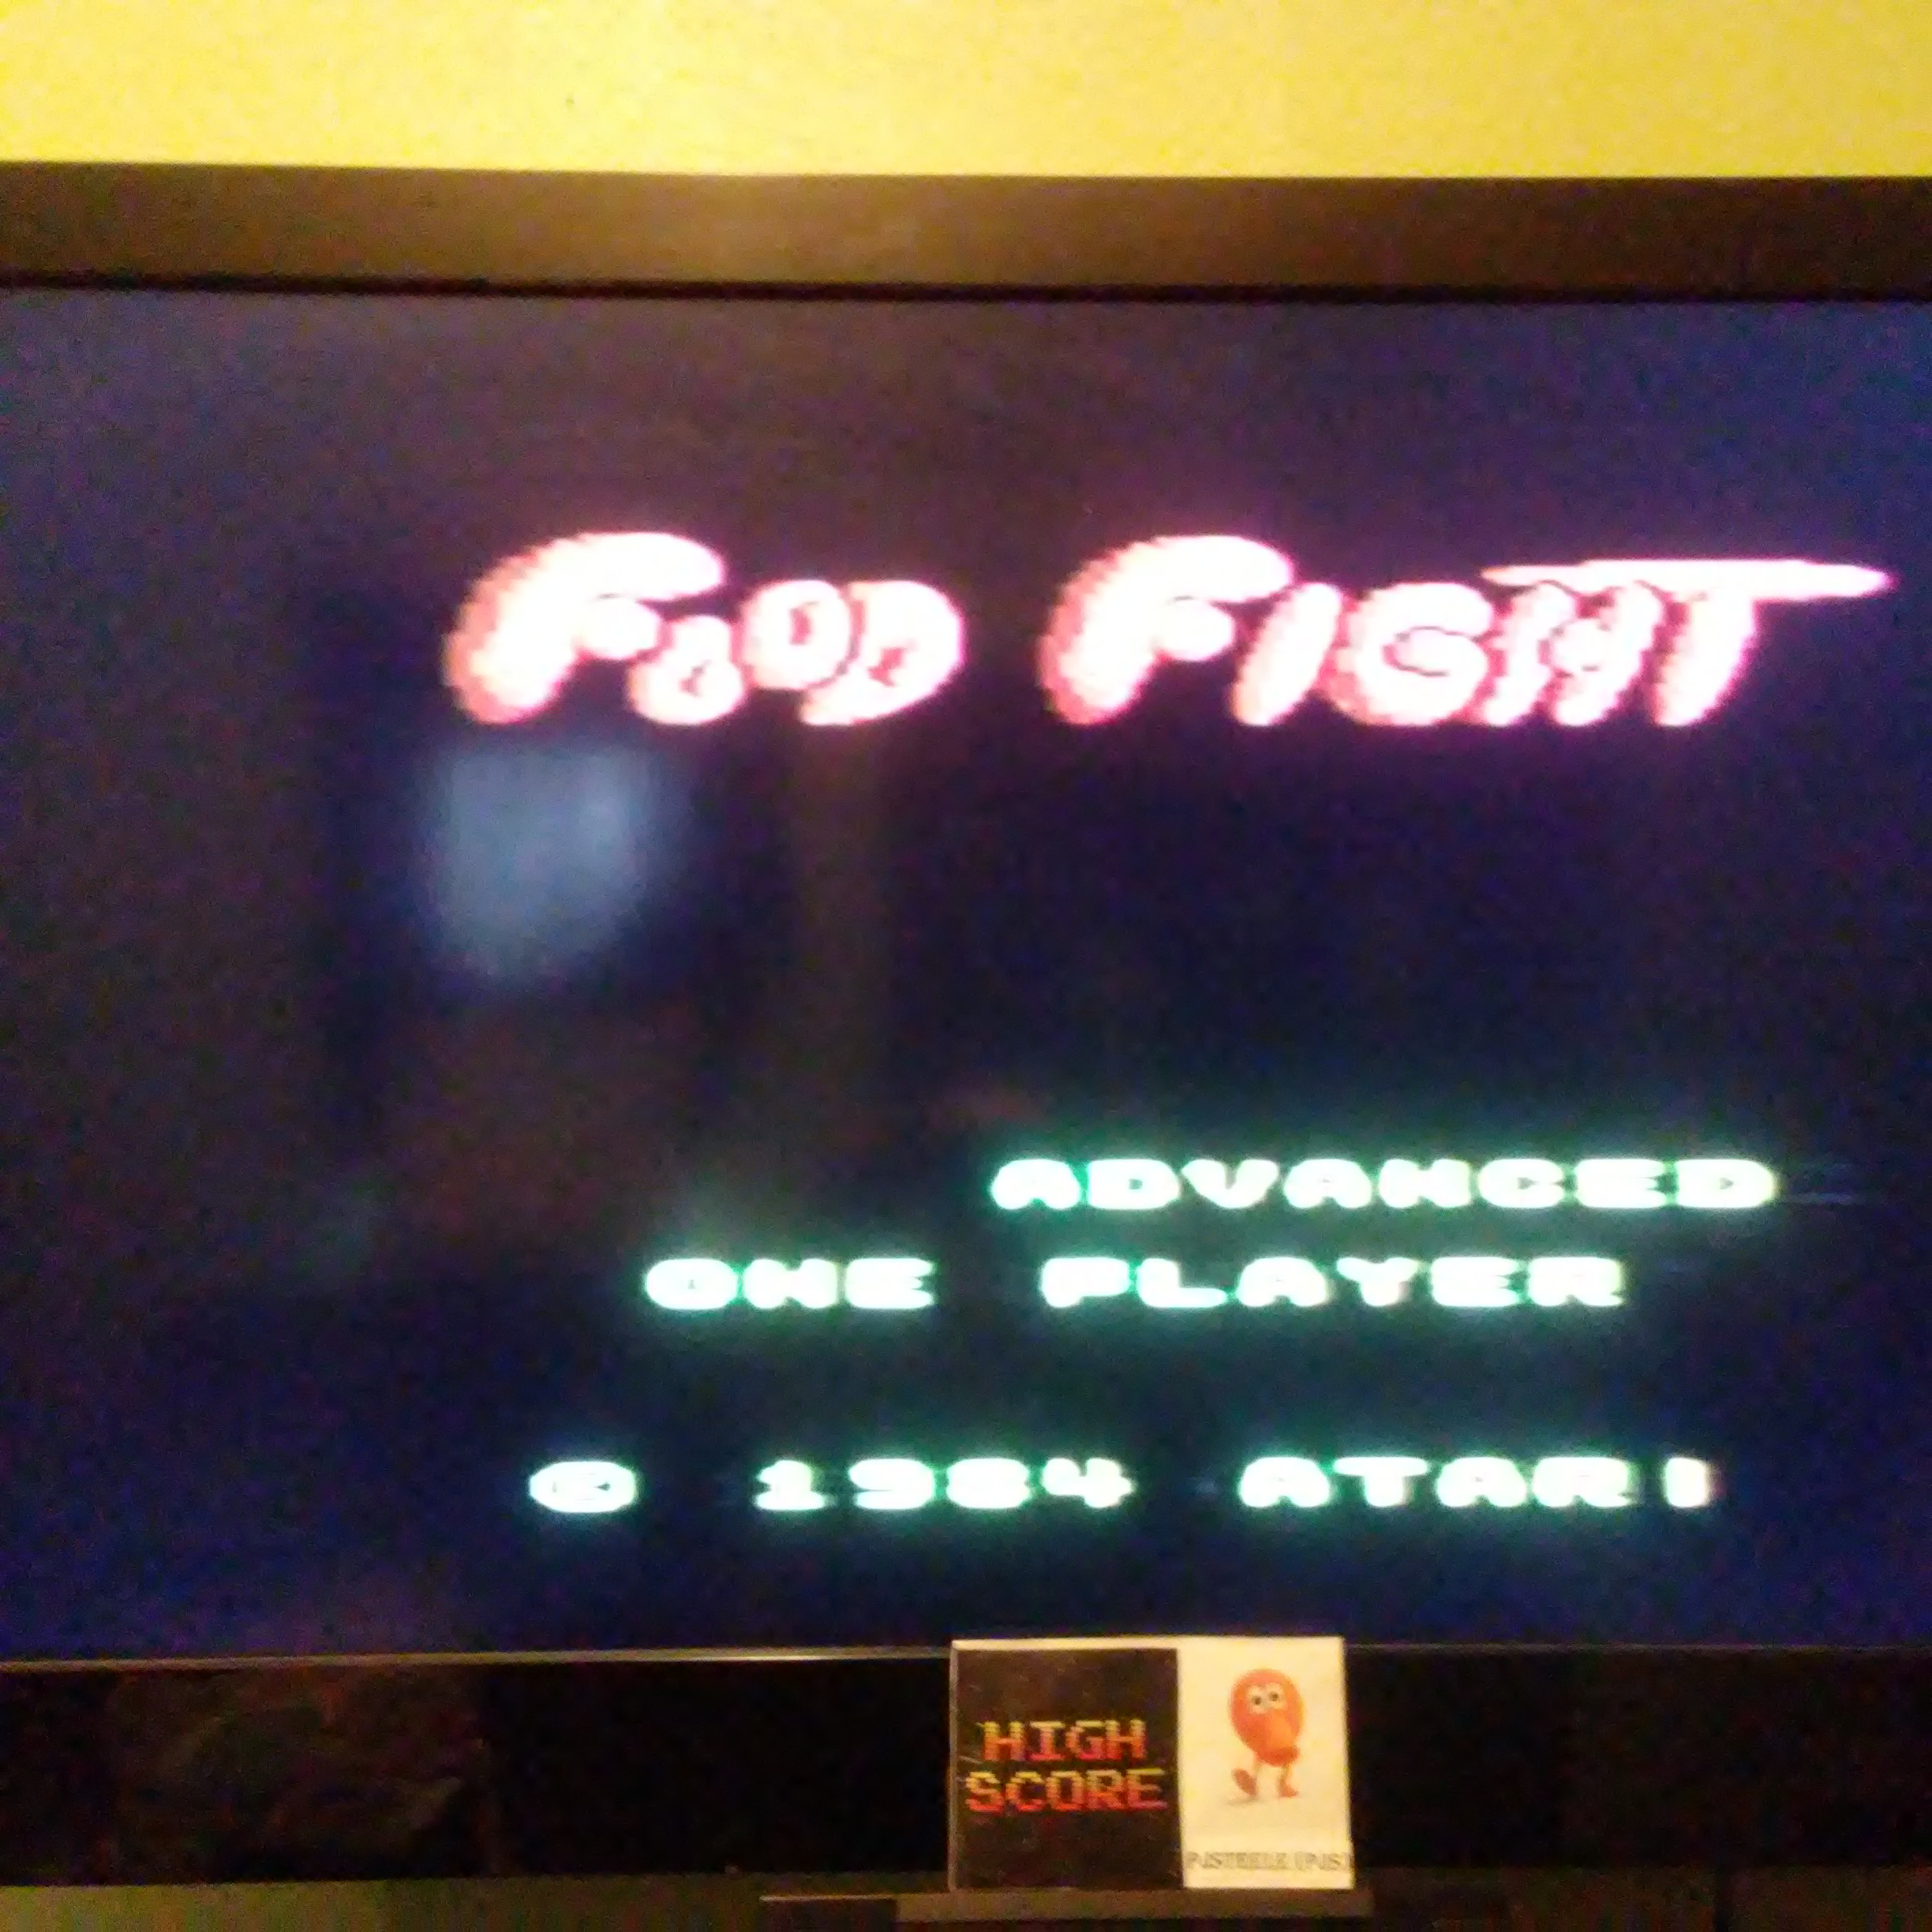 Food Fight: Advanced 171,500 points